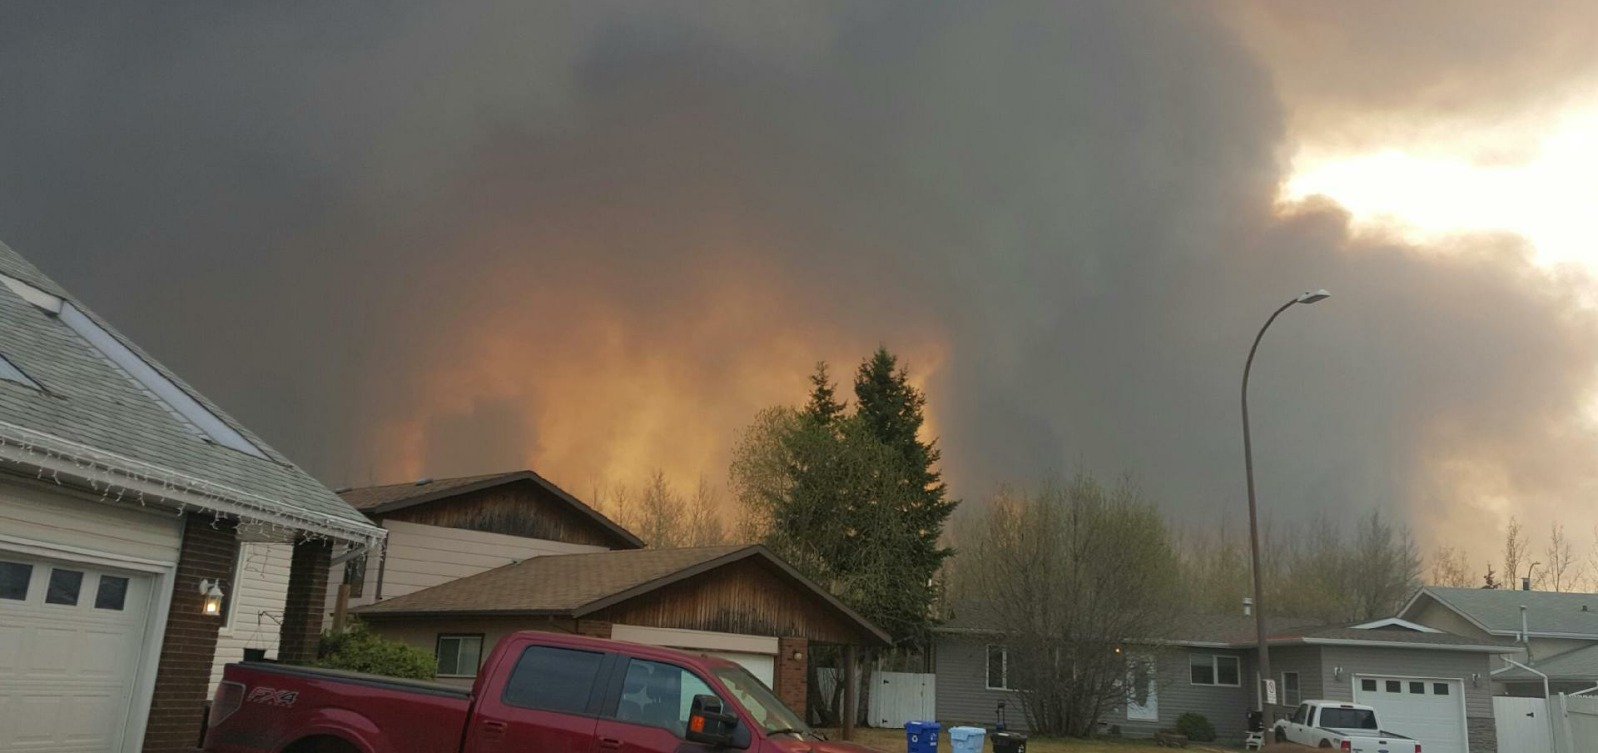 City Again Considering $25K Donation to Fort McMurray